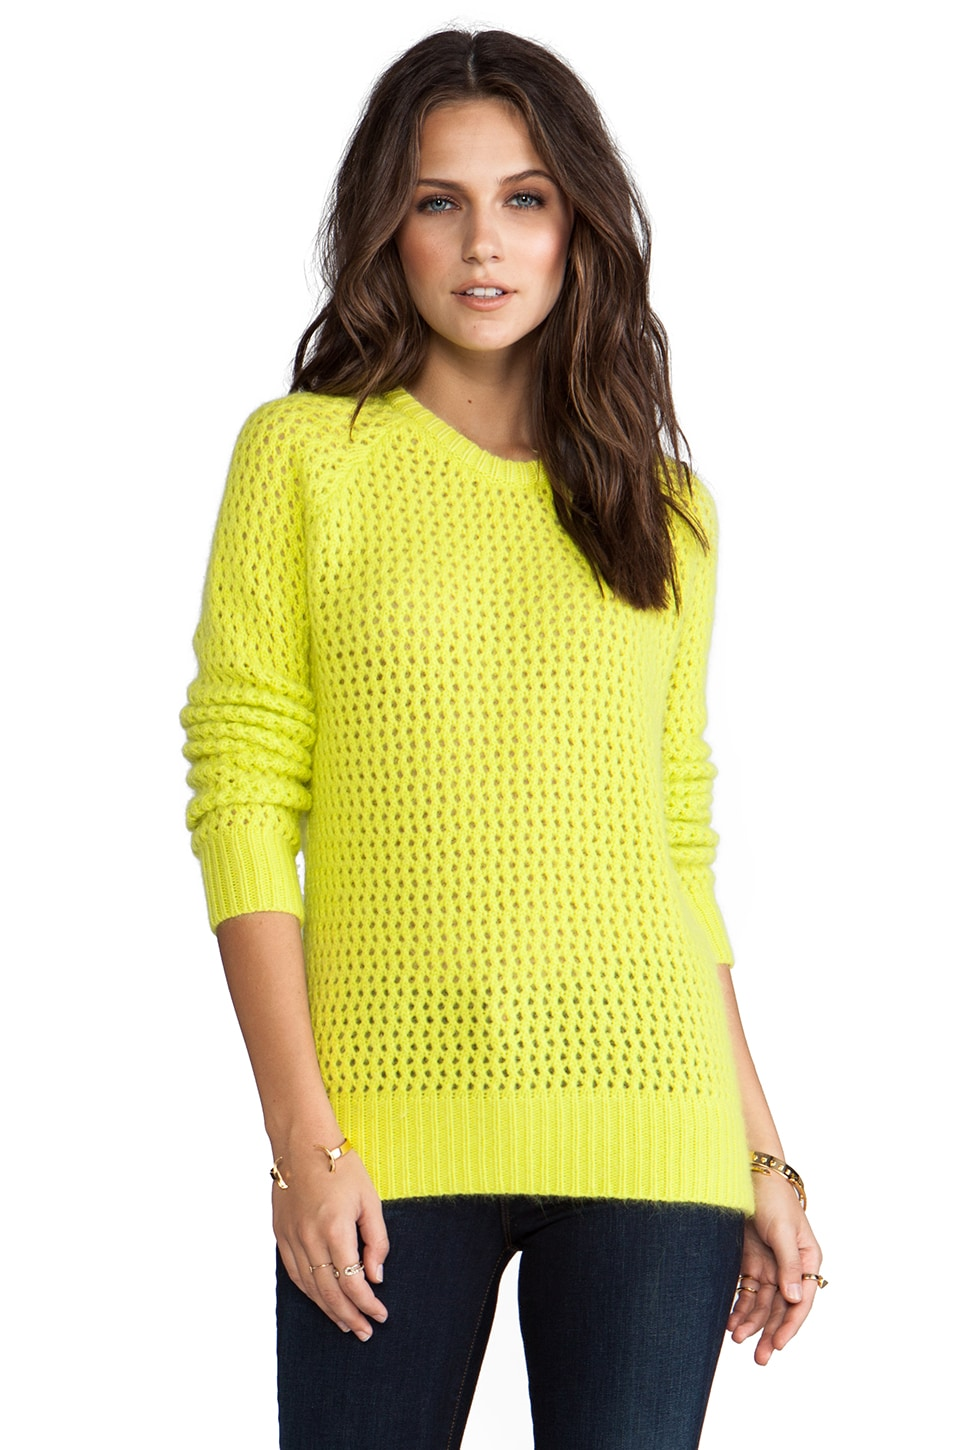 SHAE Long Sleeve Open Stitch Fuzzy Sweater in Pomme